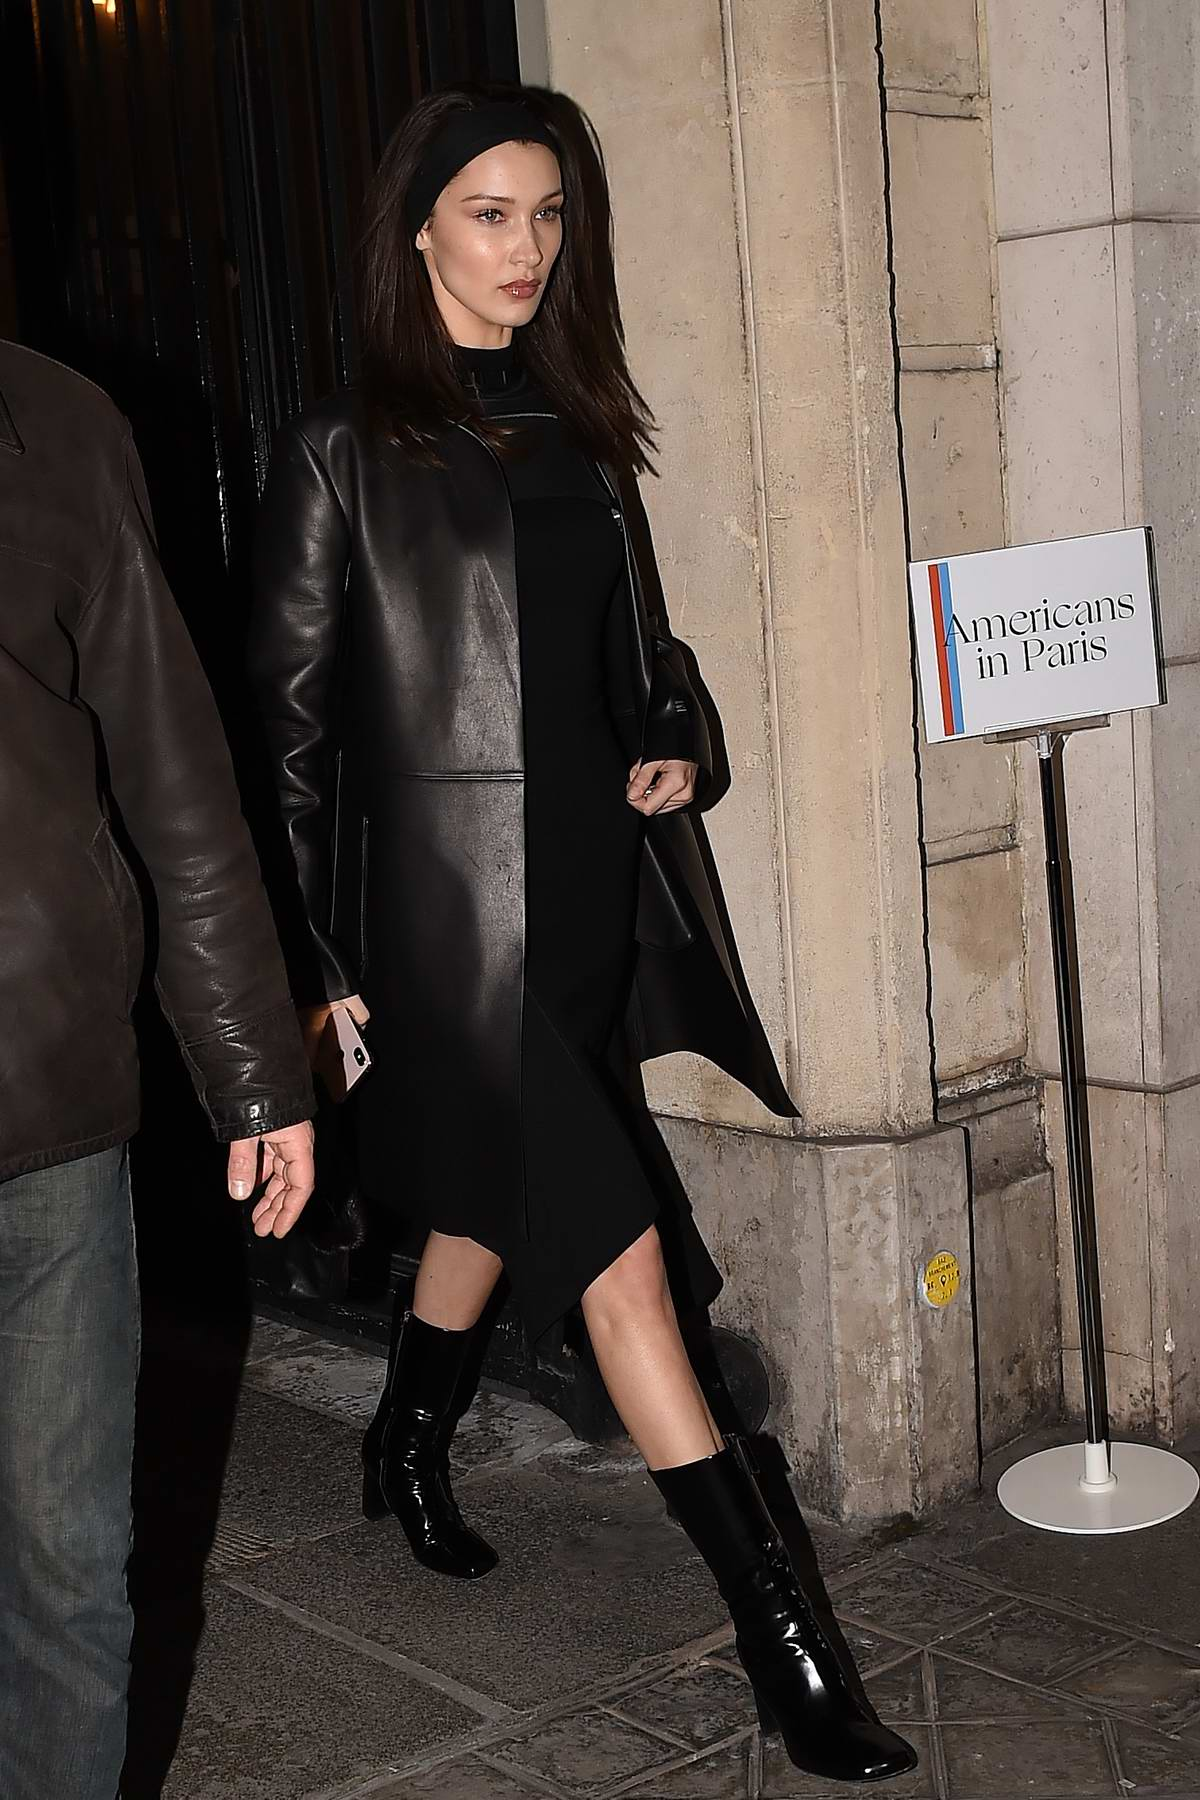 Bella Hadid attends the Vogue Party during Paris Fashion Week F/W 2019 in Paris, France